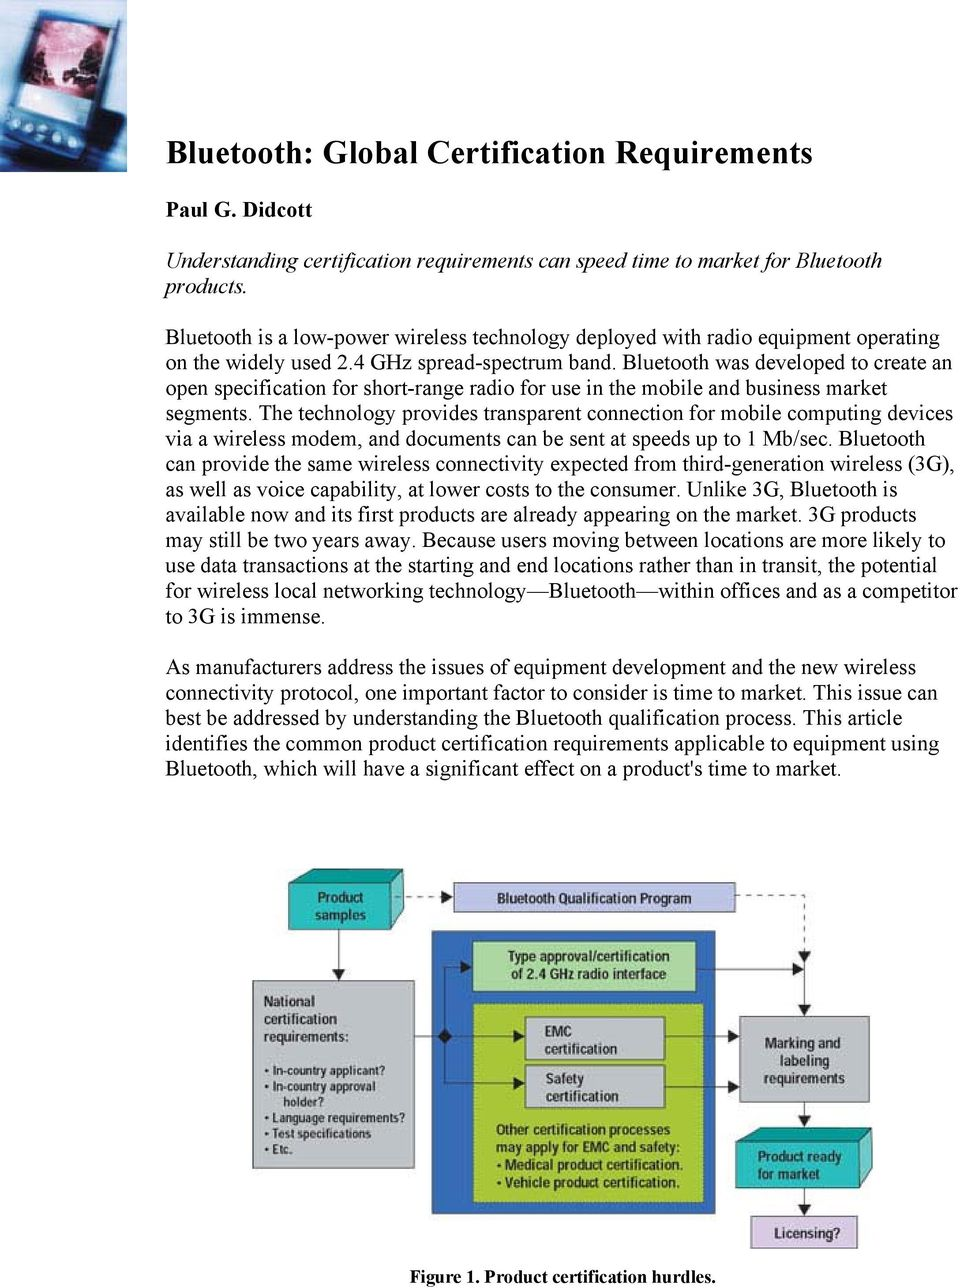 Bluetooth: Global Certification Requirements - PDF